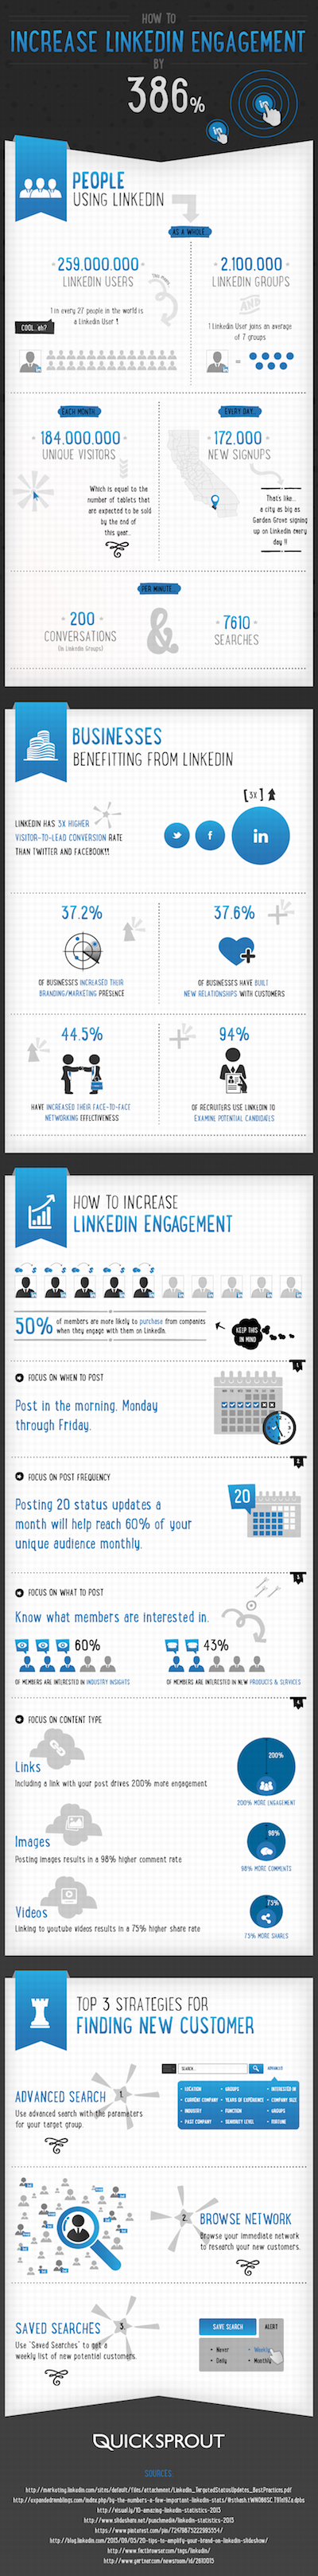 Increase Linkedin Engagement 2.0